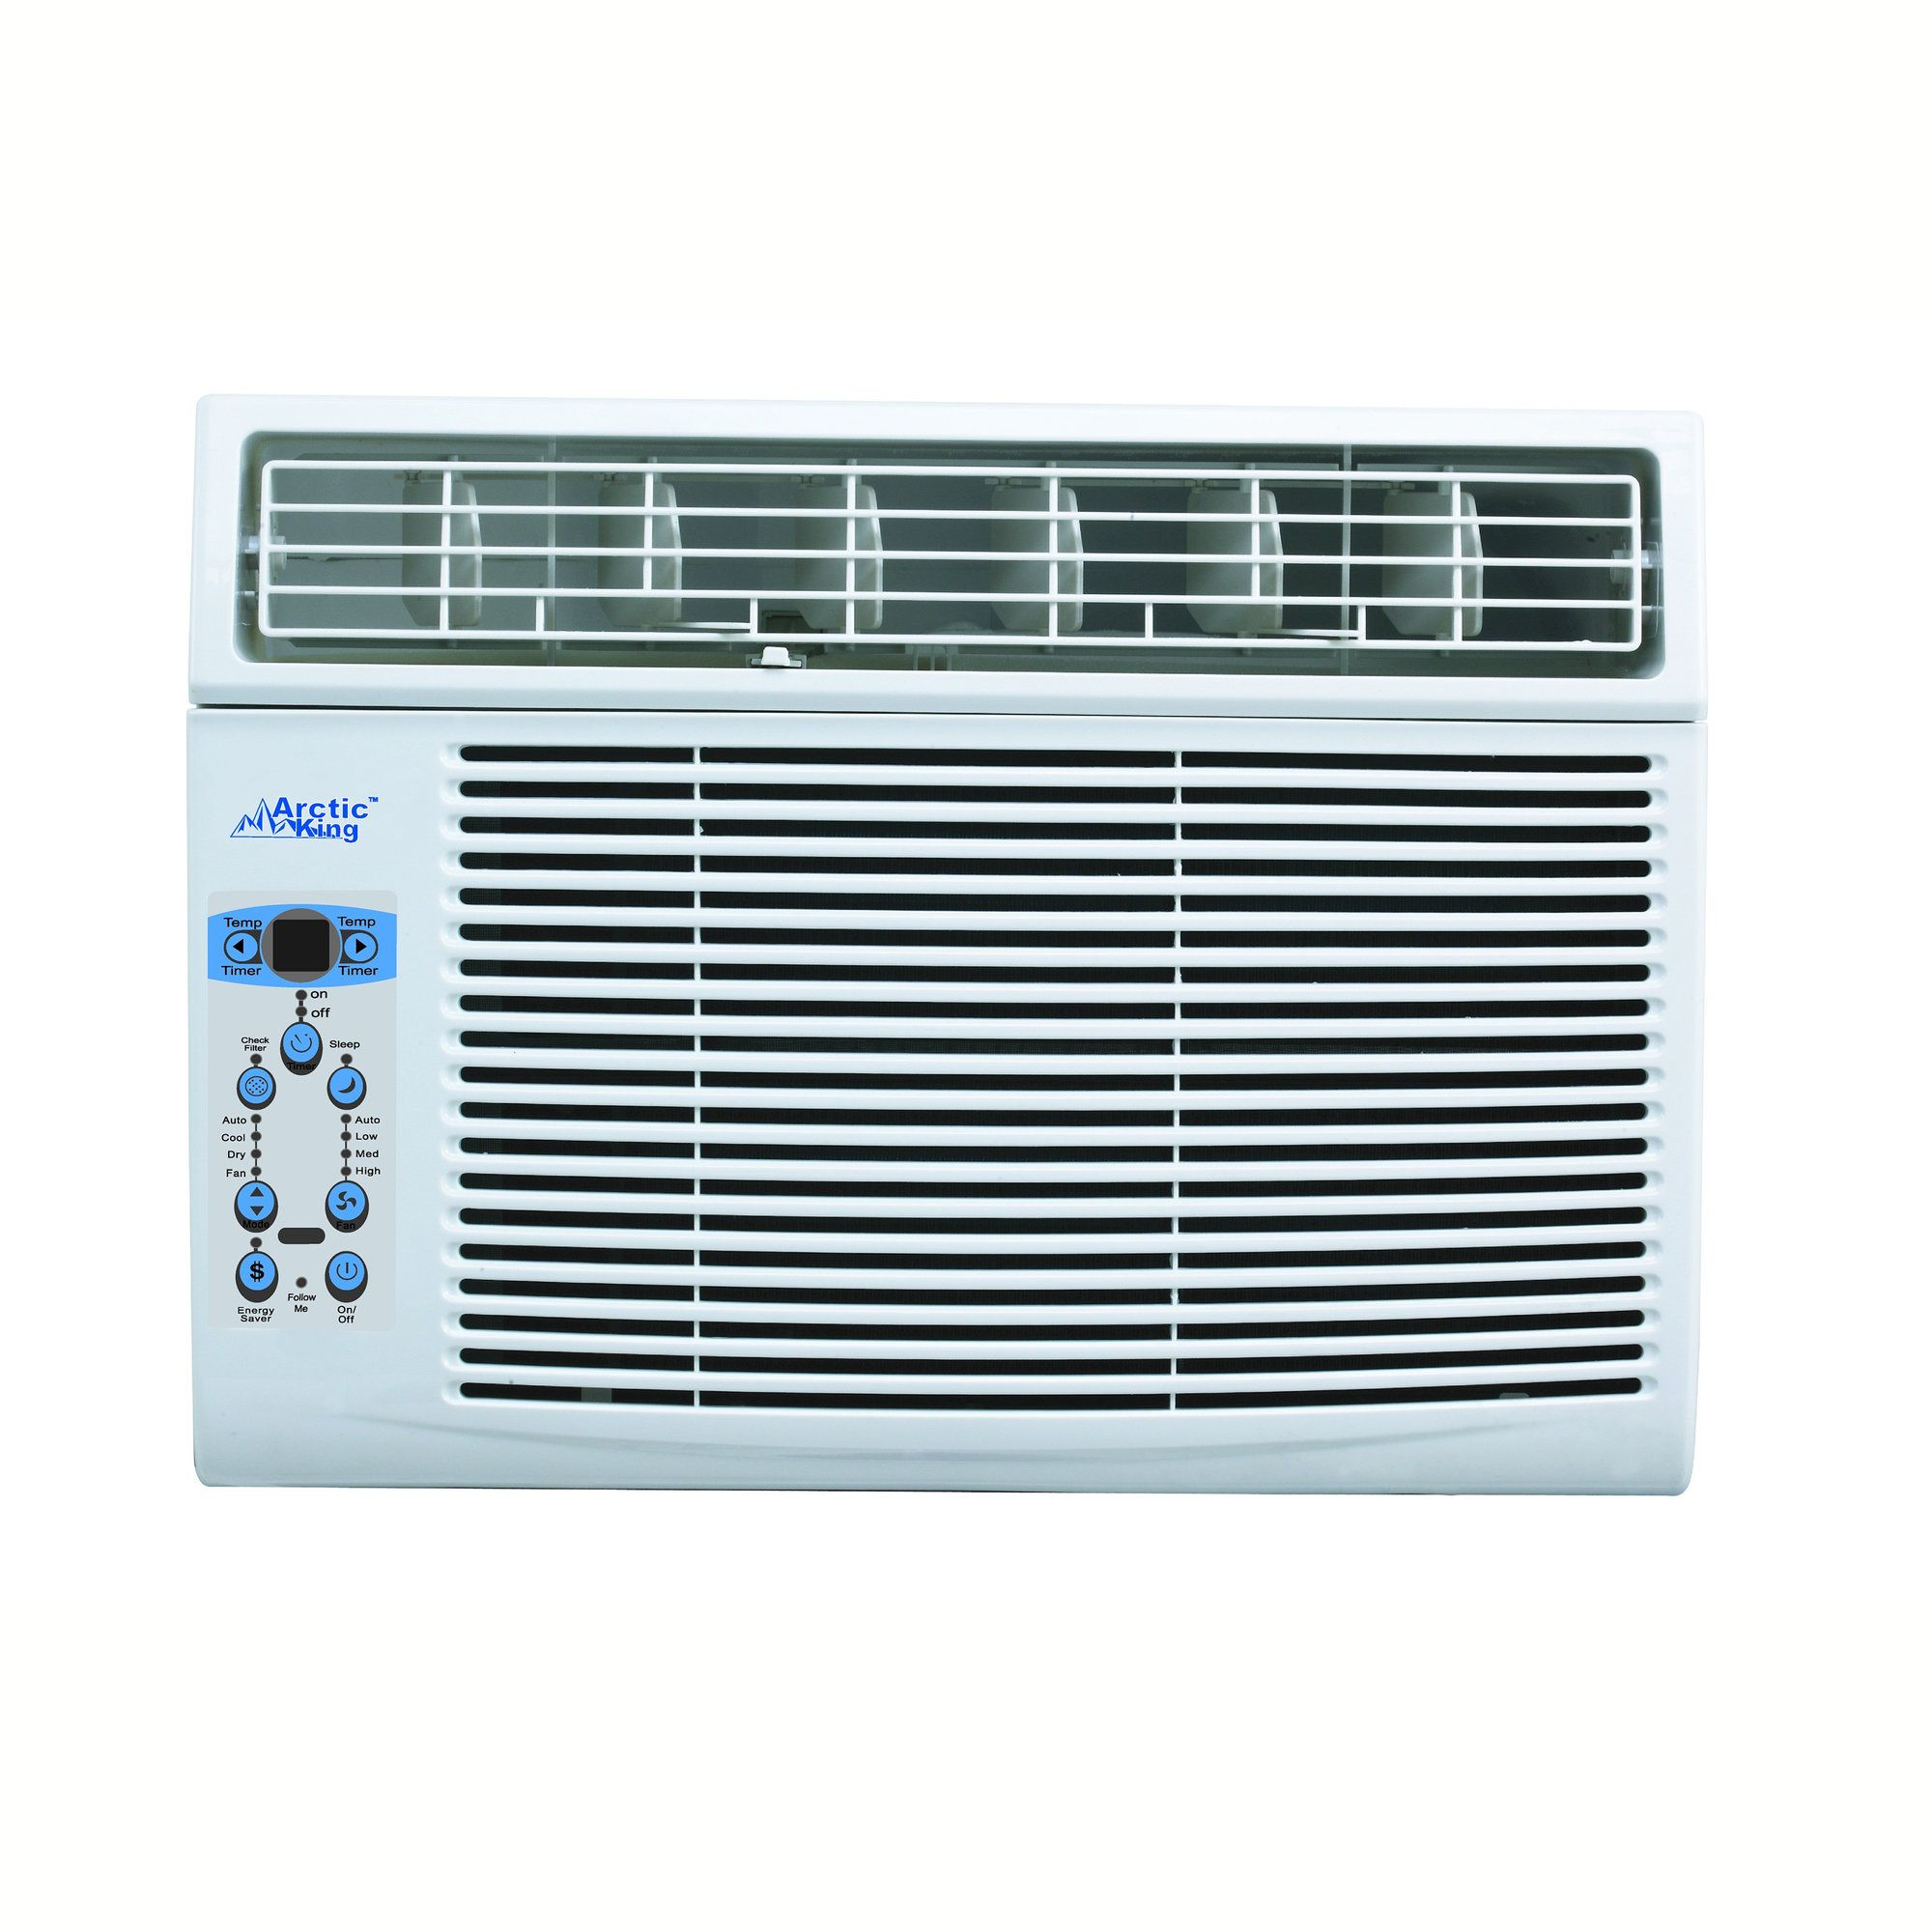 15 100 Btu Window Air Conditioner Air Conditioner Btu Window Air Conditioner Air Conditioner